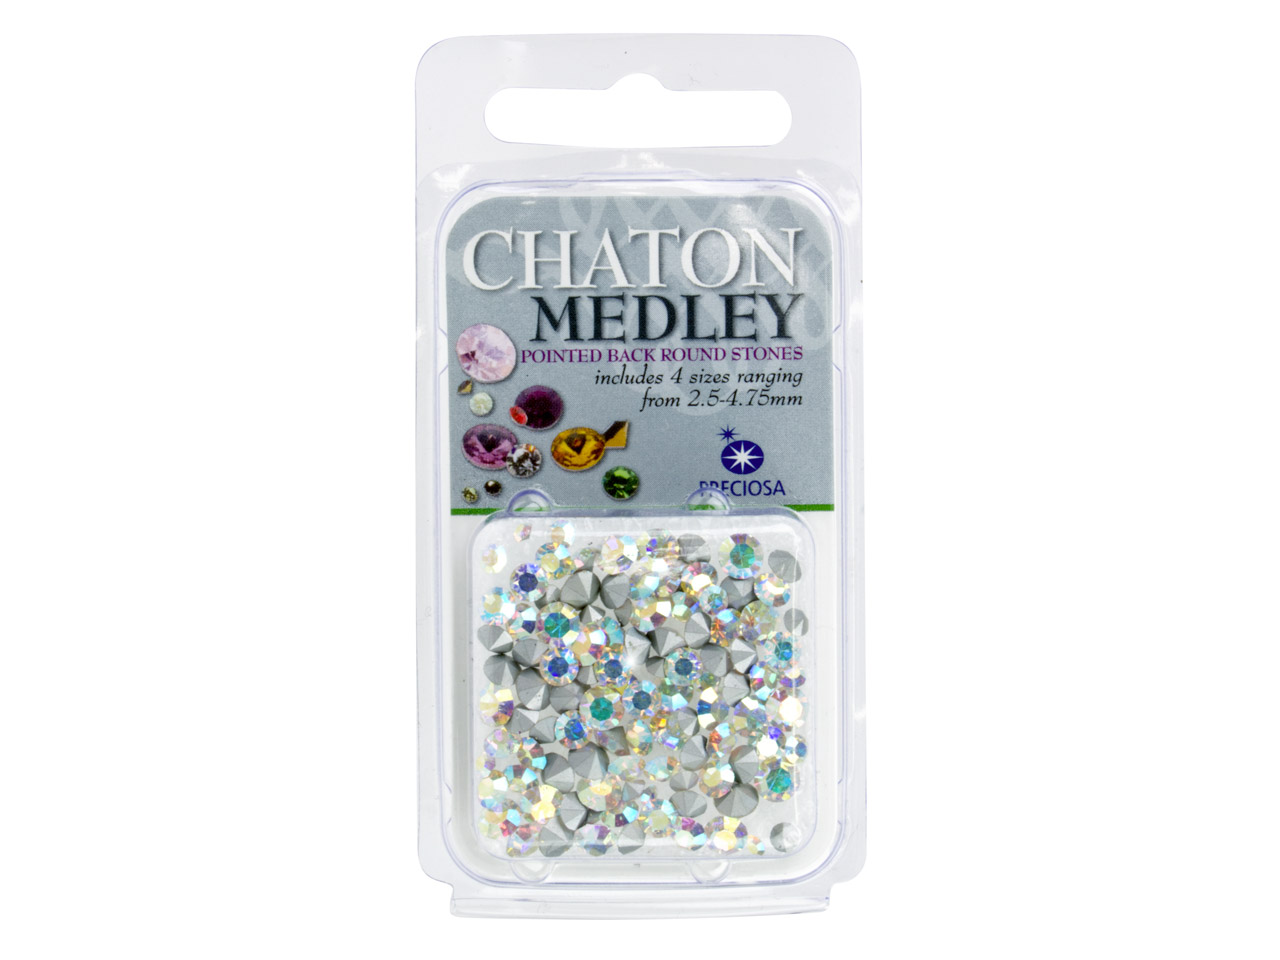 Preciosa Crystal Ab Mix Chatons, 4 Sizes, 5g Pack